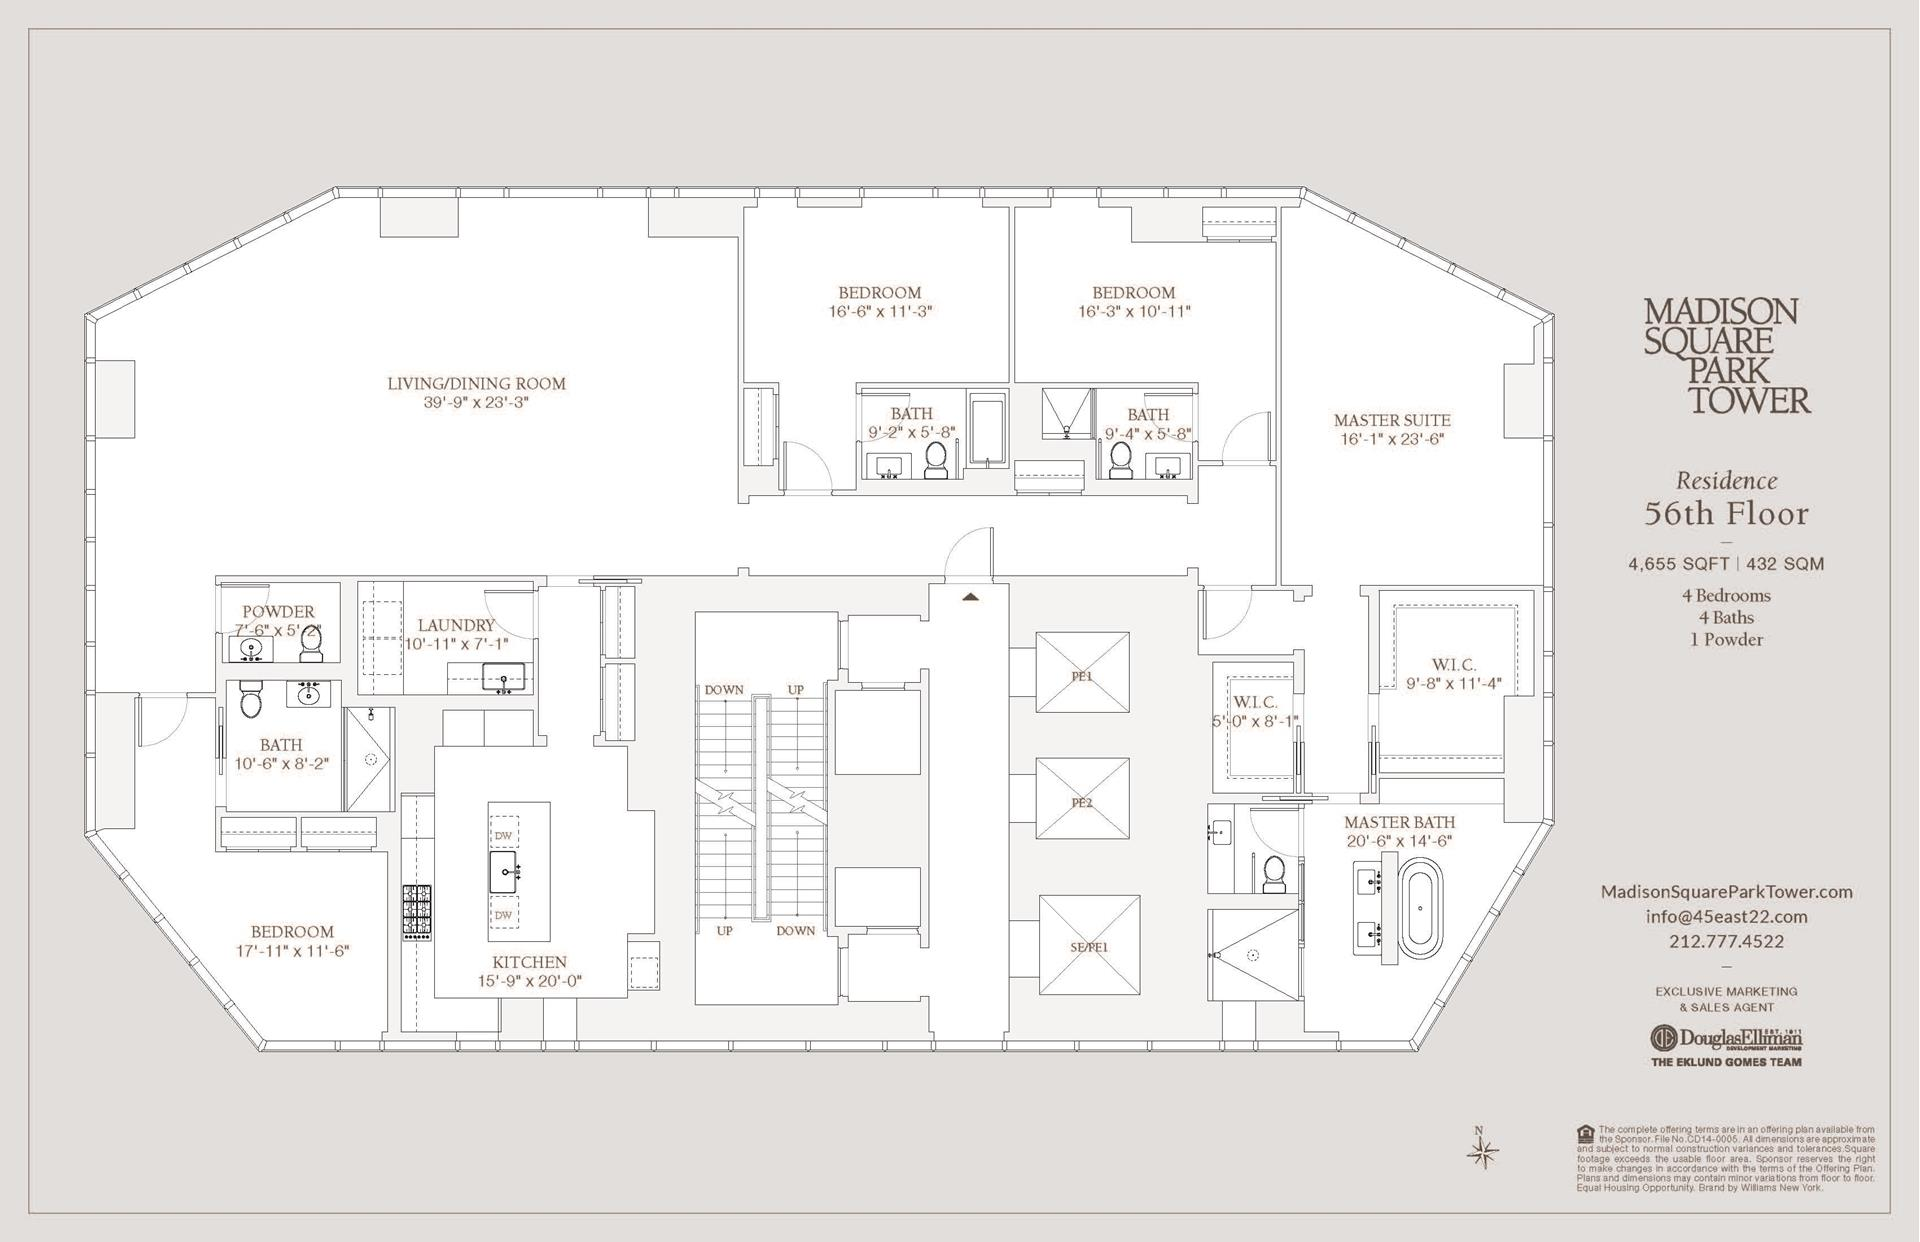 Floor plan of Madison Square Park Tower, 45 East 22nd Street, 56FL - Flatiron District, New York